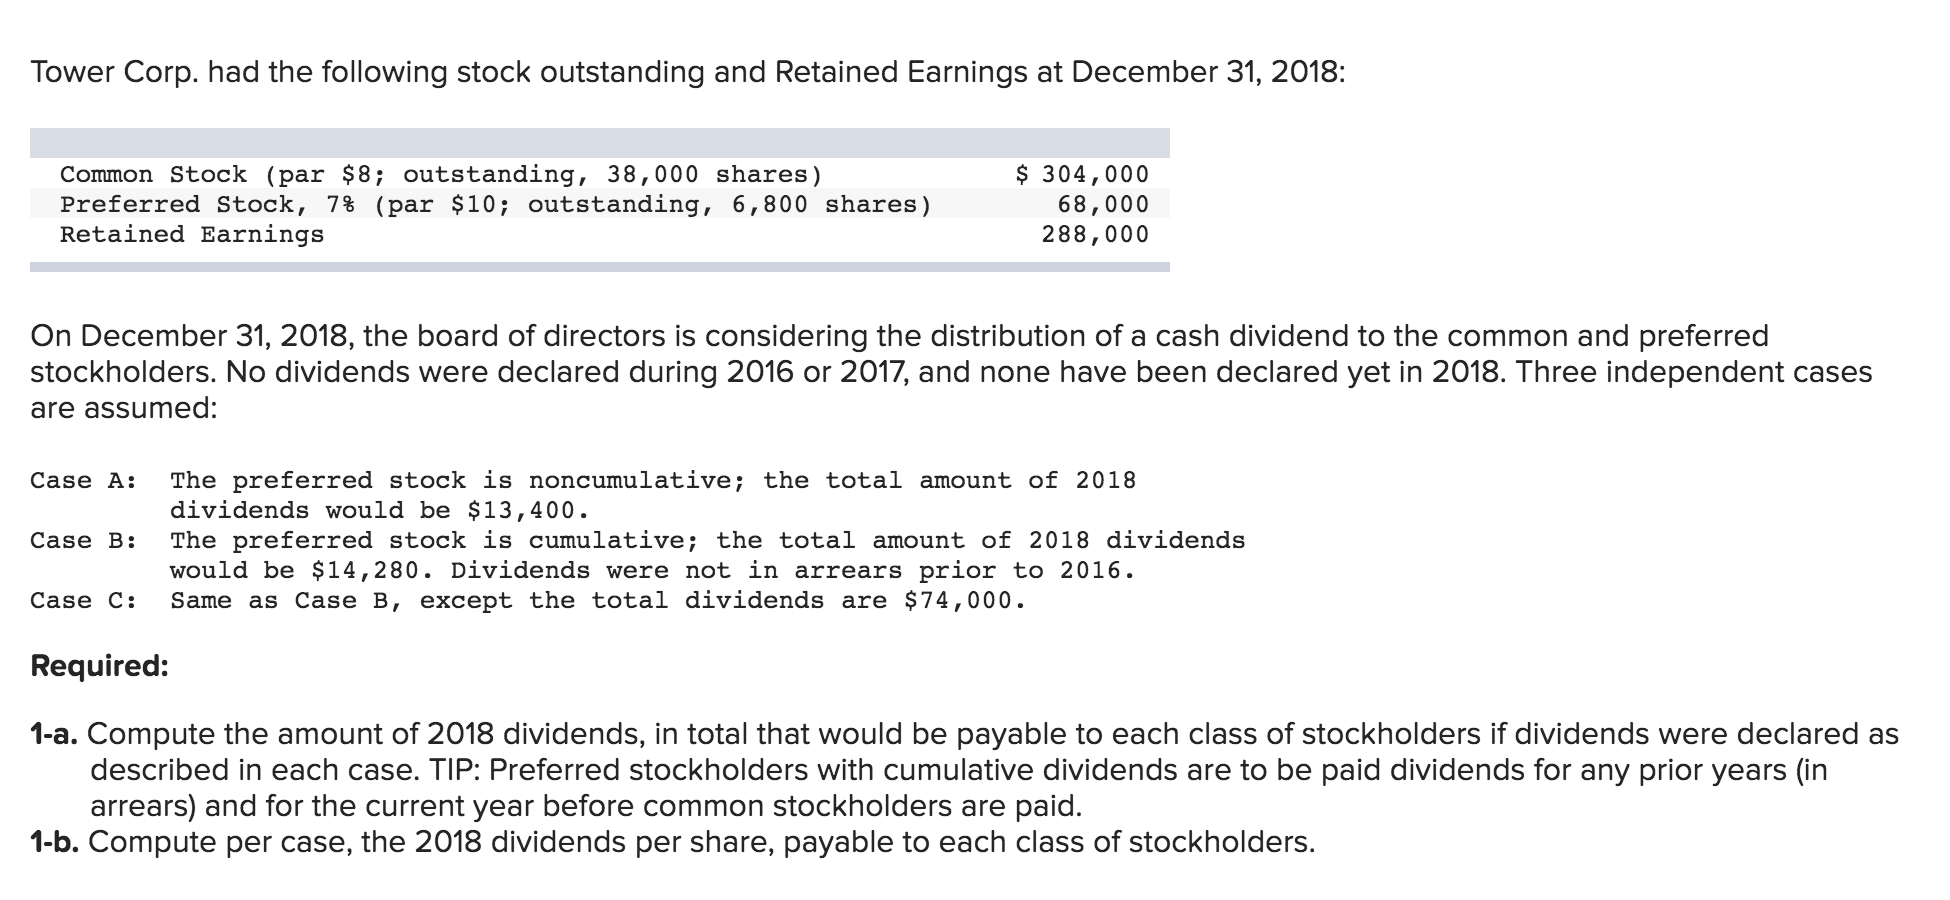 Tower Corp. had the following stock outstanding and Retained Earnings at December 31, 2018: $ 304,000 68,000 288,000 Common Stock (par $8; outstanding, 38,000 shares) Preferred Stock, 7% (par $10; outstanding, 6,800 shares) Retained Earnings On December 31, 2018, the board of directors is considering the distribution of a cash dividend to the common and preferred stockholders. No dividends were declared during 2016 or 2017, and none have been declared yet in 2018. Three independent cases are assumed: The preferred stock is noncumulative; the total amount of 2018 dividends would be $13,400. The preferred stock is cumulative; the total amount of 2018 dividends would be $14,280. Dividends were not in arrears prior to 2016. Same as Case B, except the total dividends are $74,000. Case A: Case B: Case C: Required: 1-a. Compute the amount of 2018 dividends, in total that would be payable to each class of stockholders if dividends were declared as described in each case. TIP: Preferred stockholders with cumulative dividends are to be paid dividends for any prior years (in arrears) and for the current year before common stockholders are paid. 1-b. Compute per case, the 2018 dividends per share, payable to each class of stockholders.